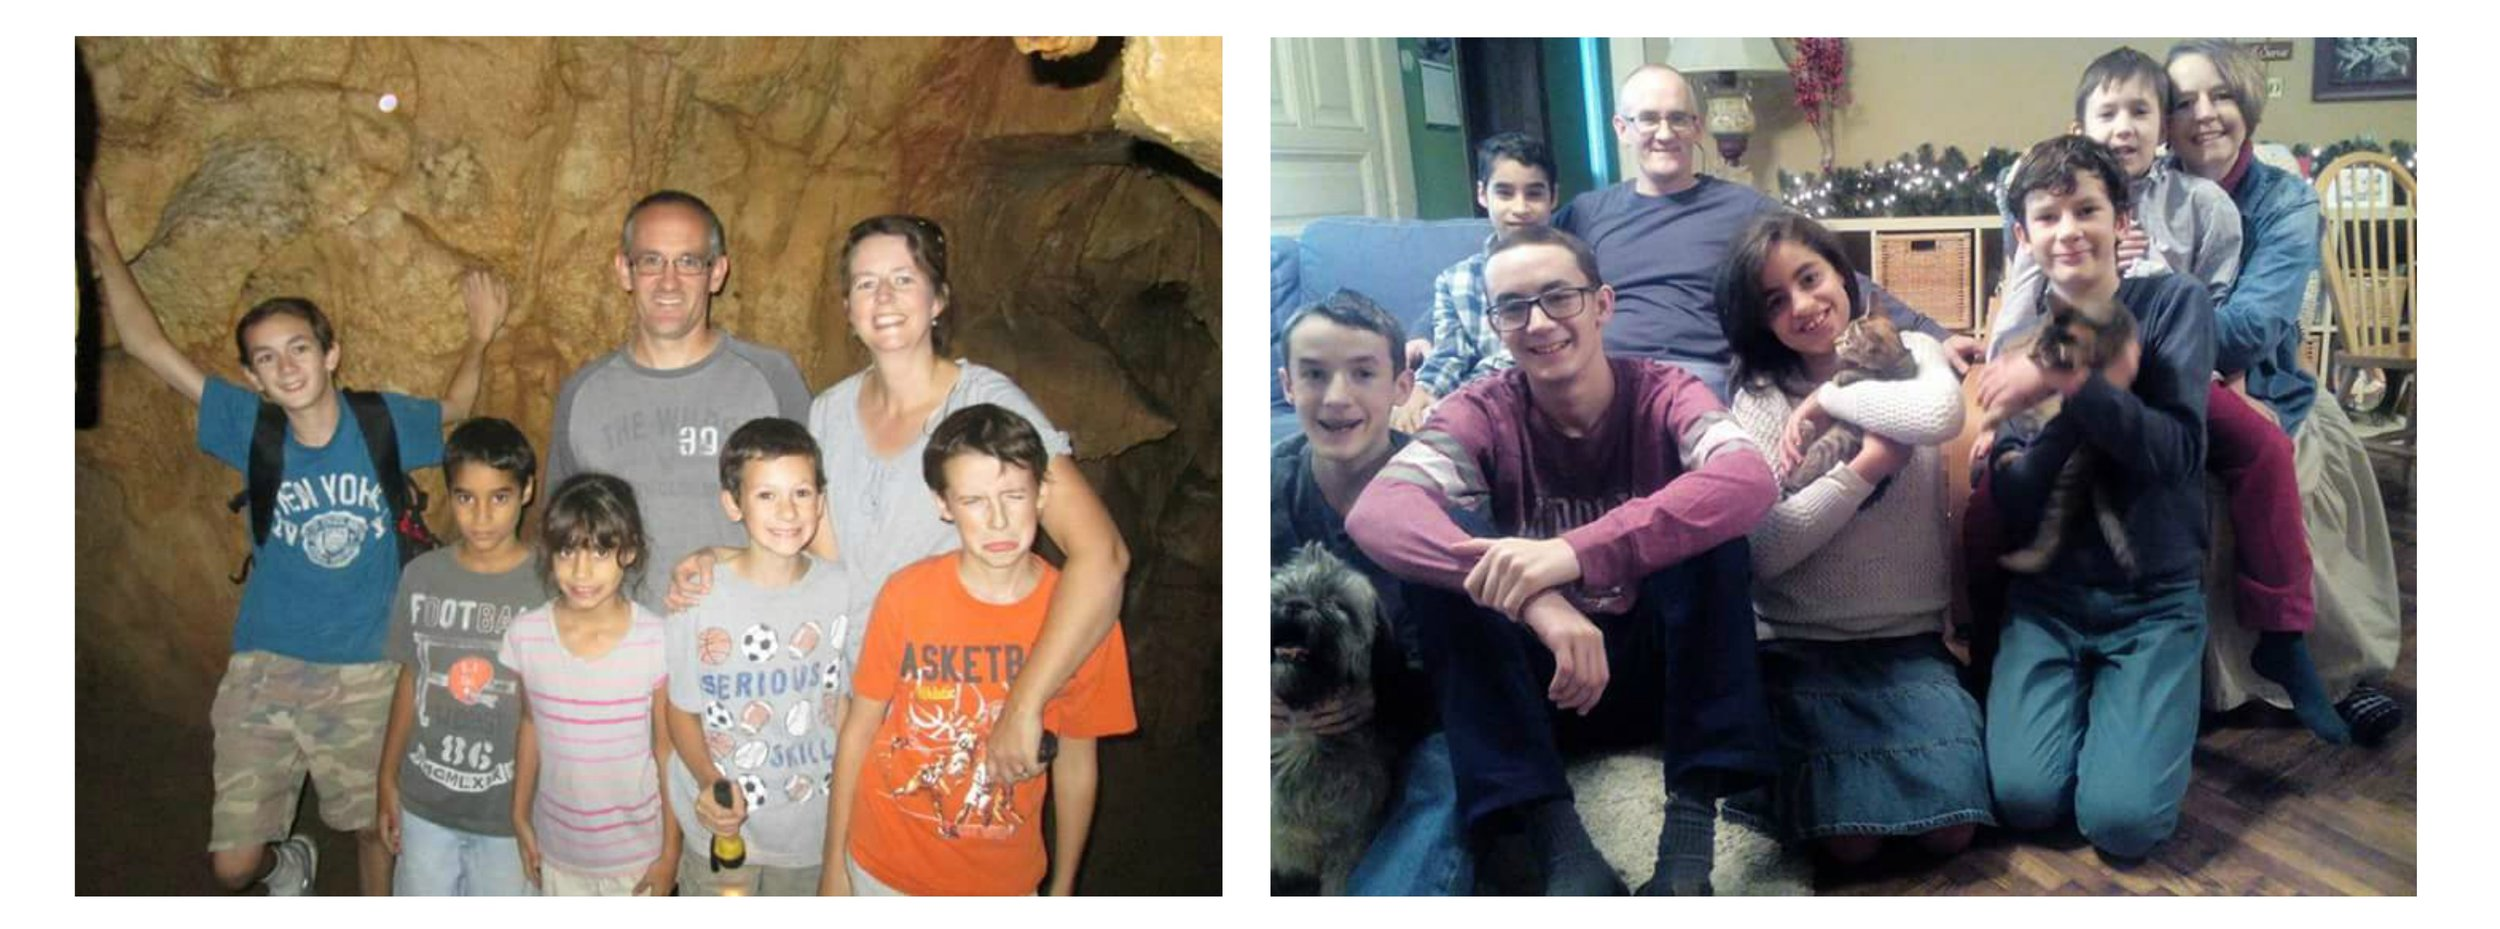 Howerton and his family: Left-five years ago; Right-Christmas 2015